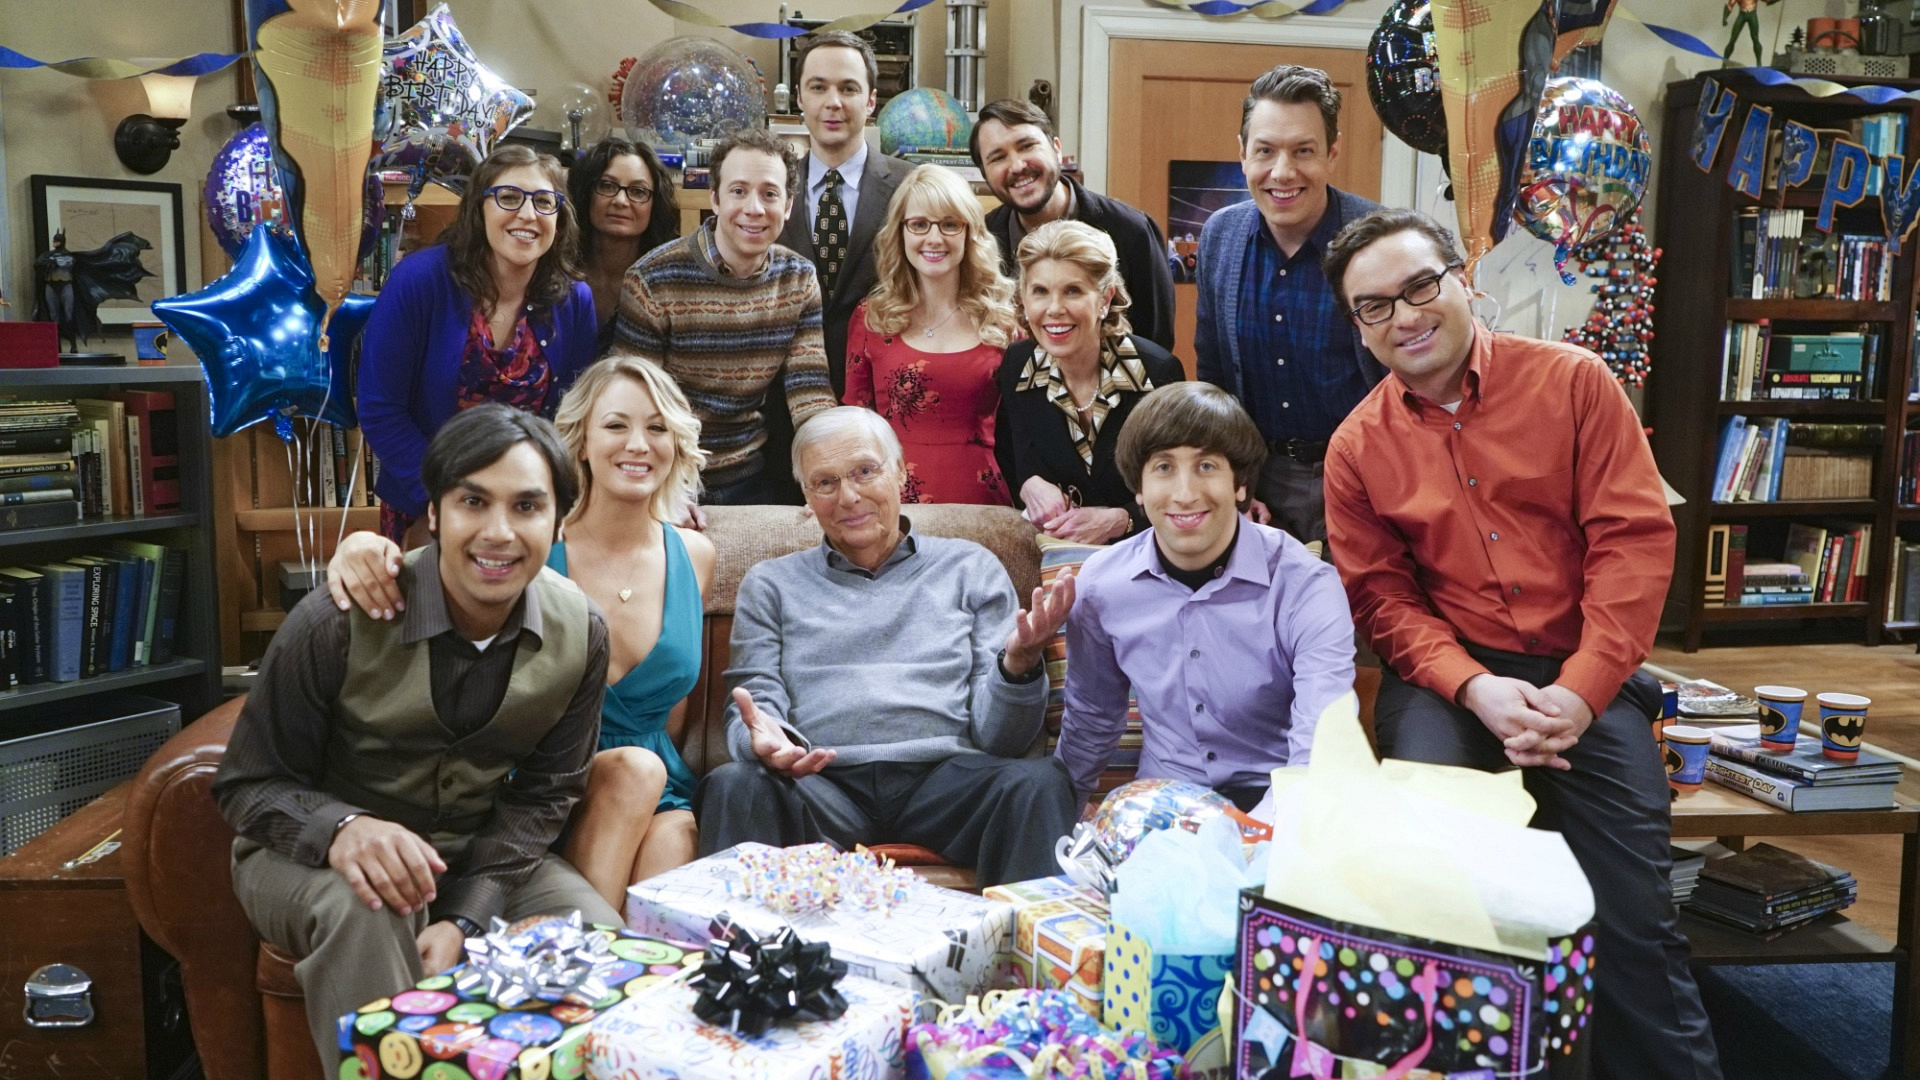 The Big Bang Theory celebrated 200 episodes and Sheldon's birthday with presents and smiles.